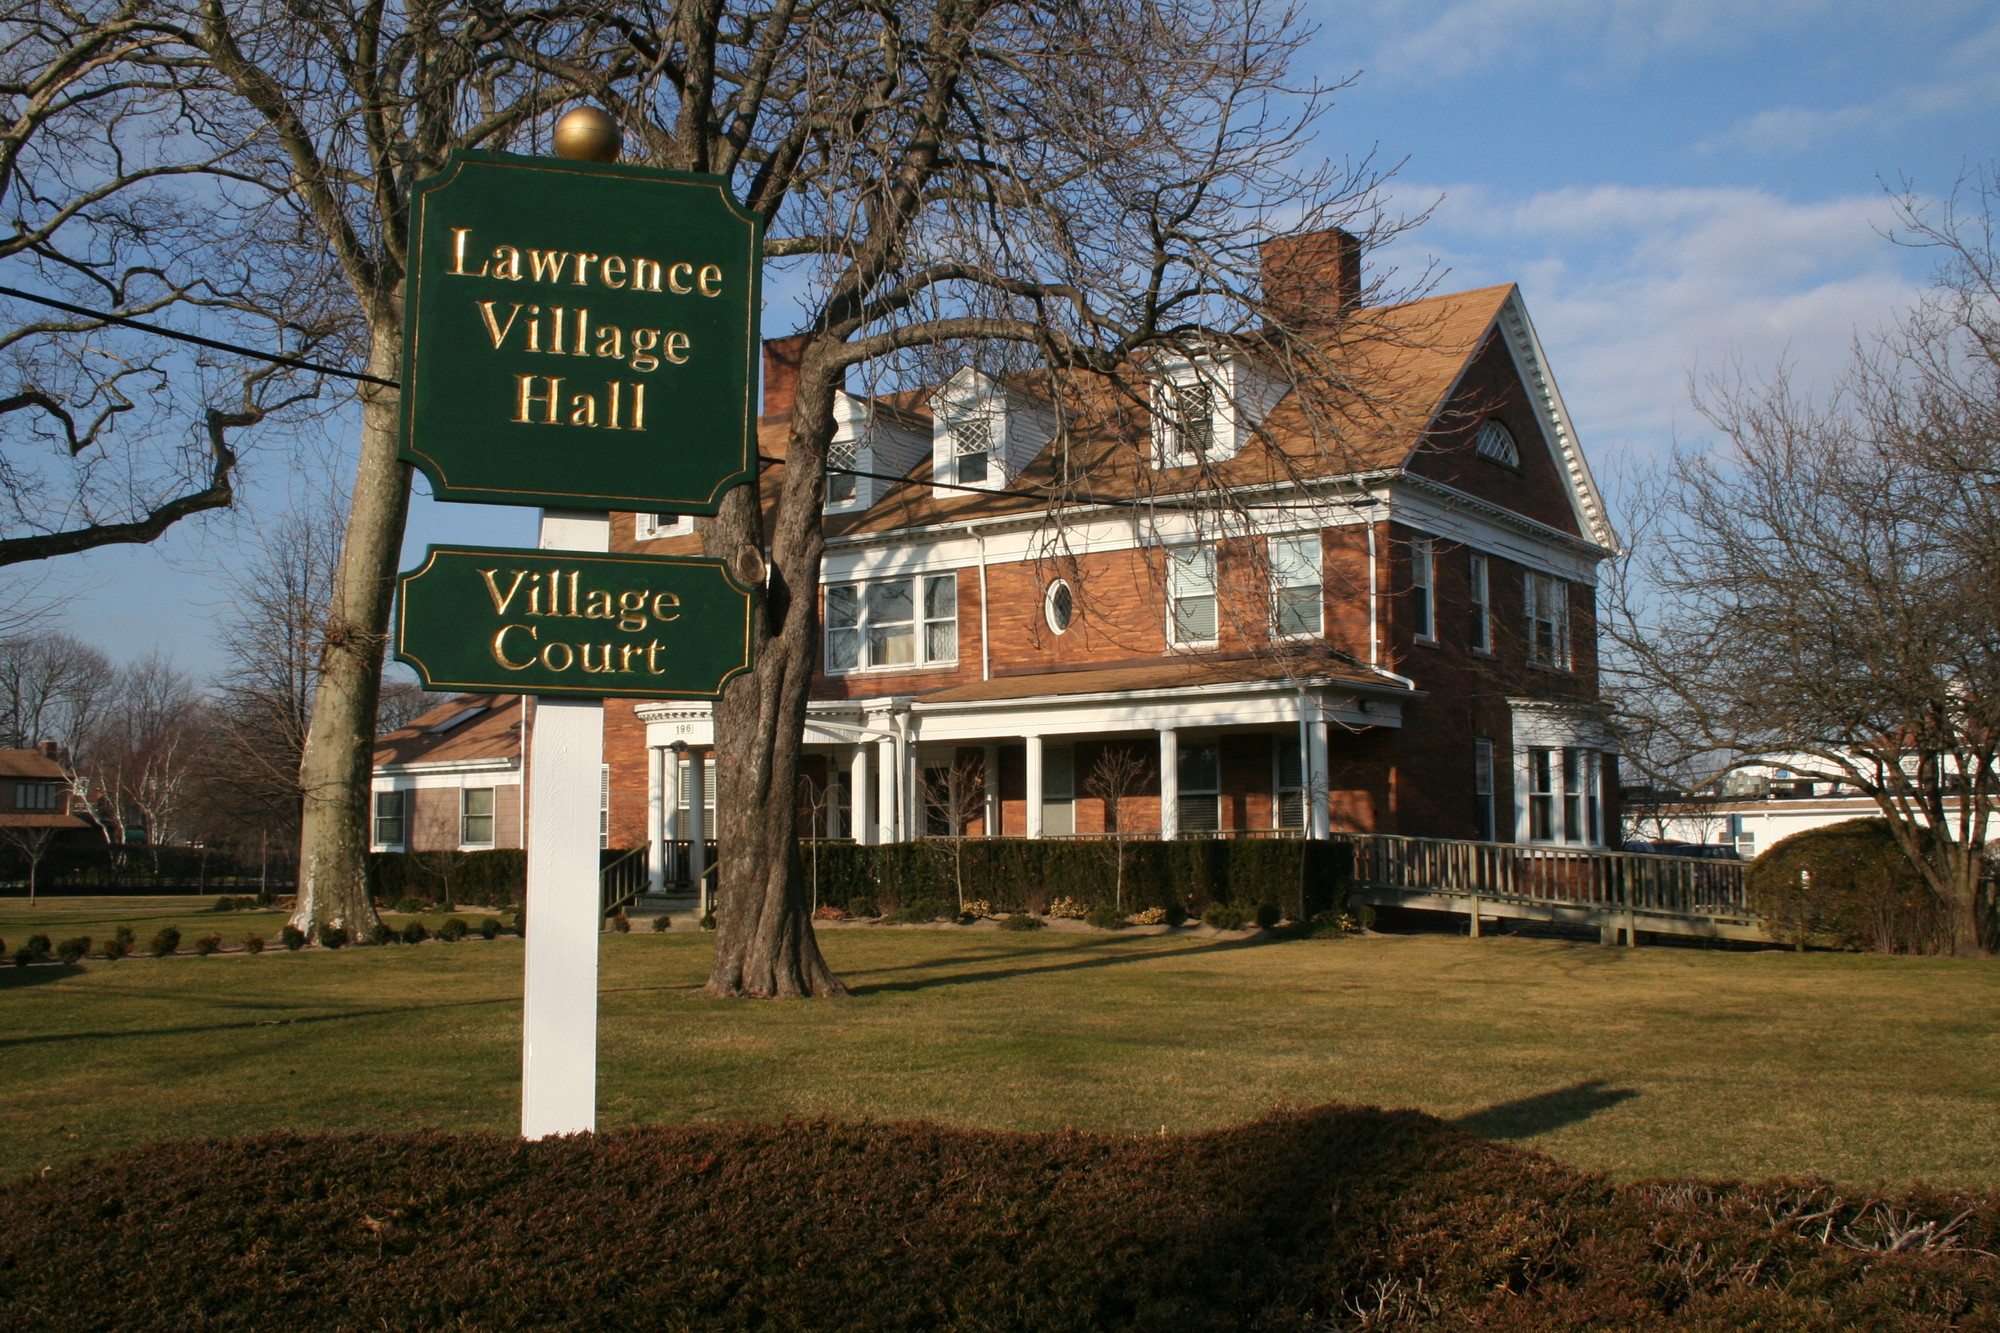 Village of Lawrence Mayor Martin Oliner addresed several issues in a letter to residents.